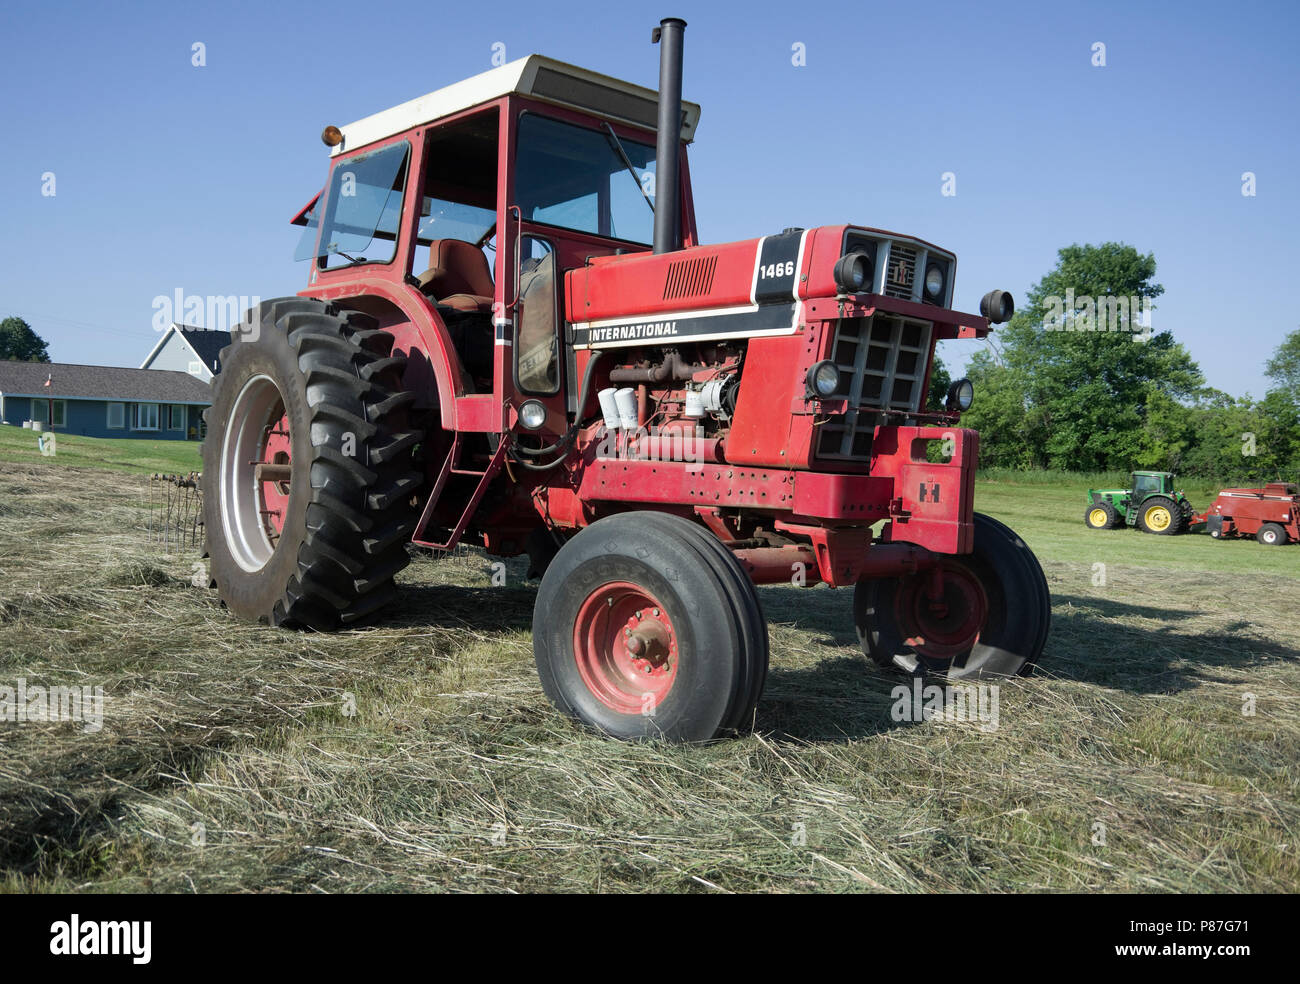 International Harvester model 1466 diesel Row Crop tractor in hay field